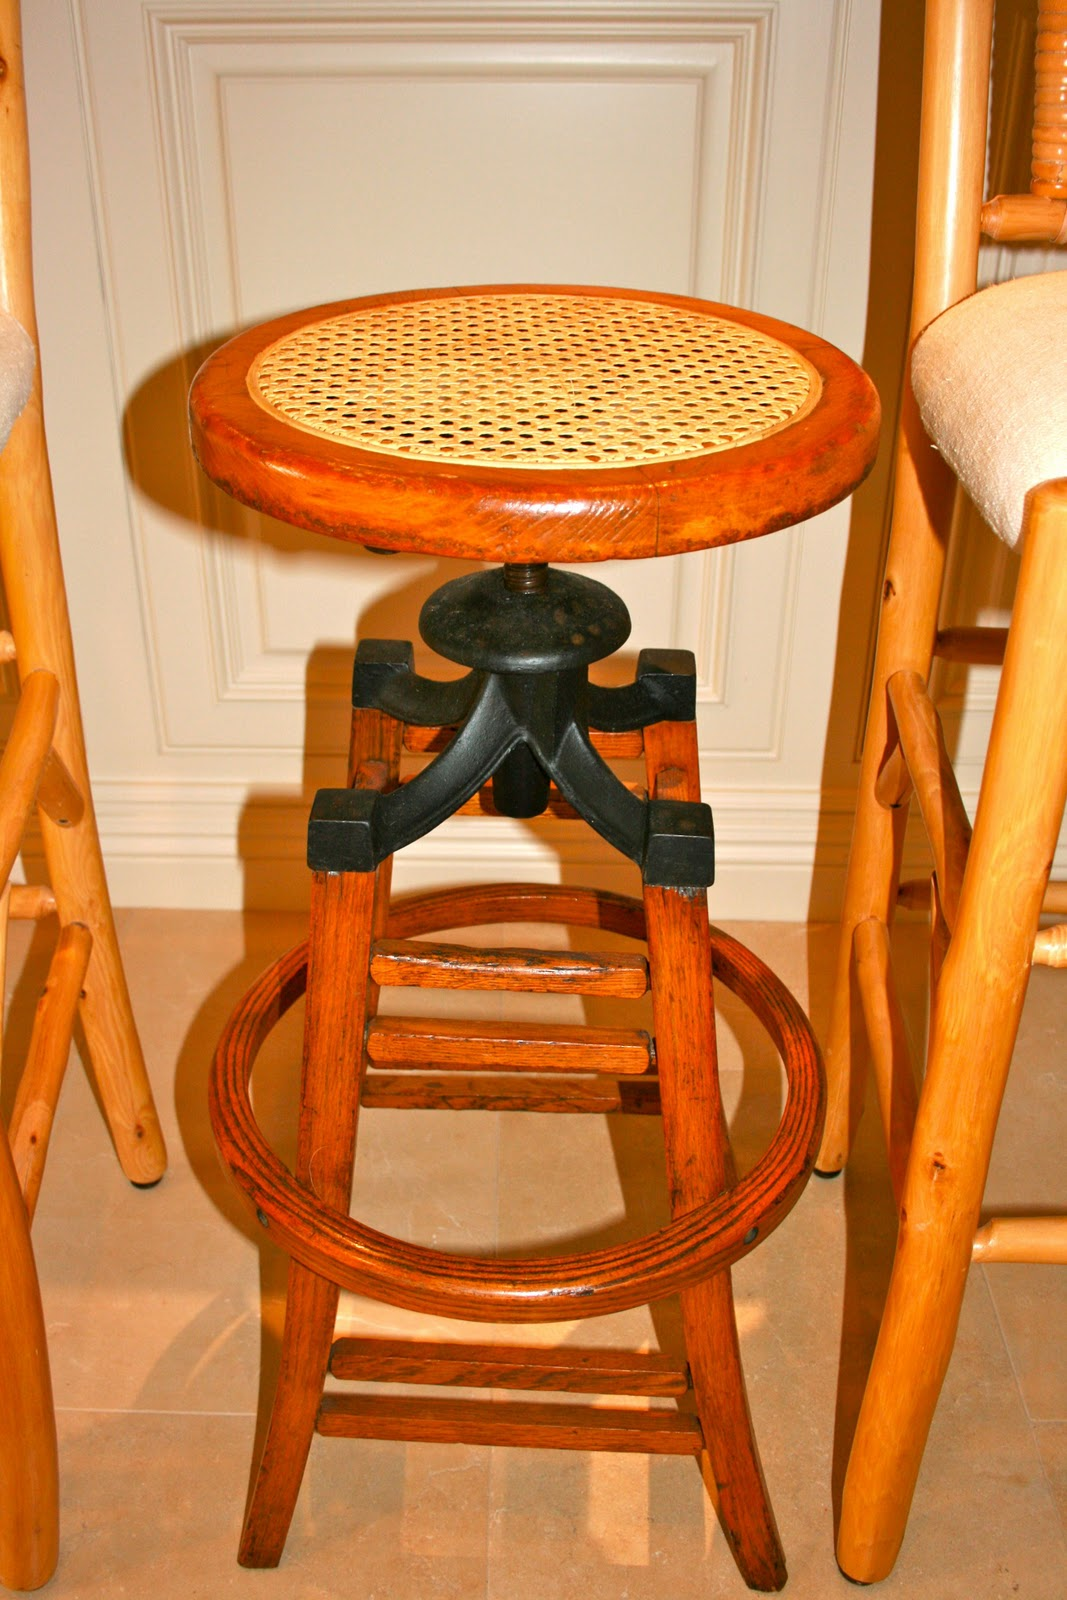 hickory chair dallas design center xxl wheelchair the polished pebble old furniture a love affair